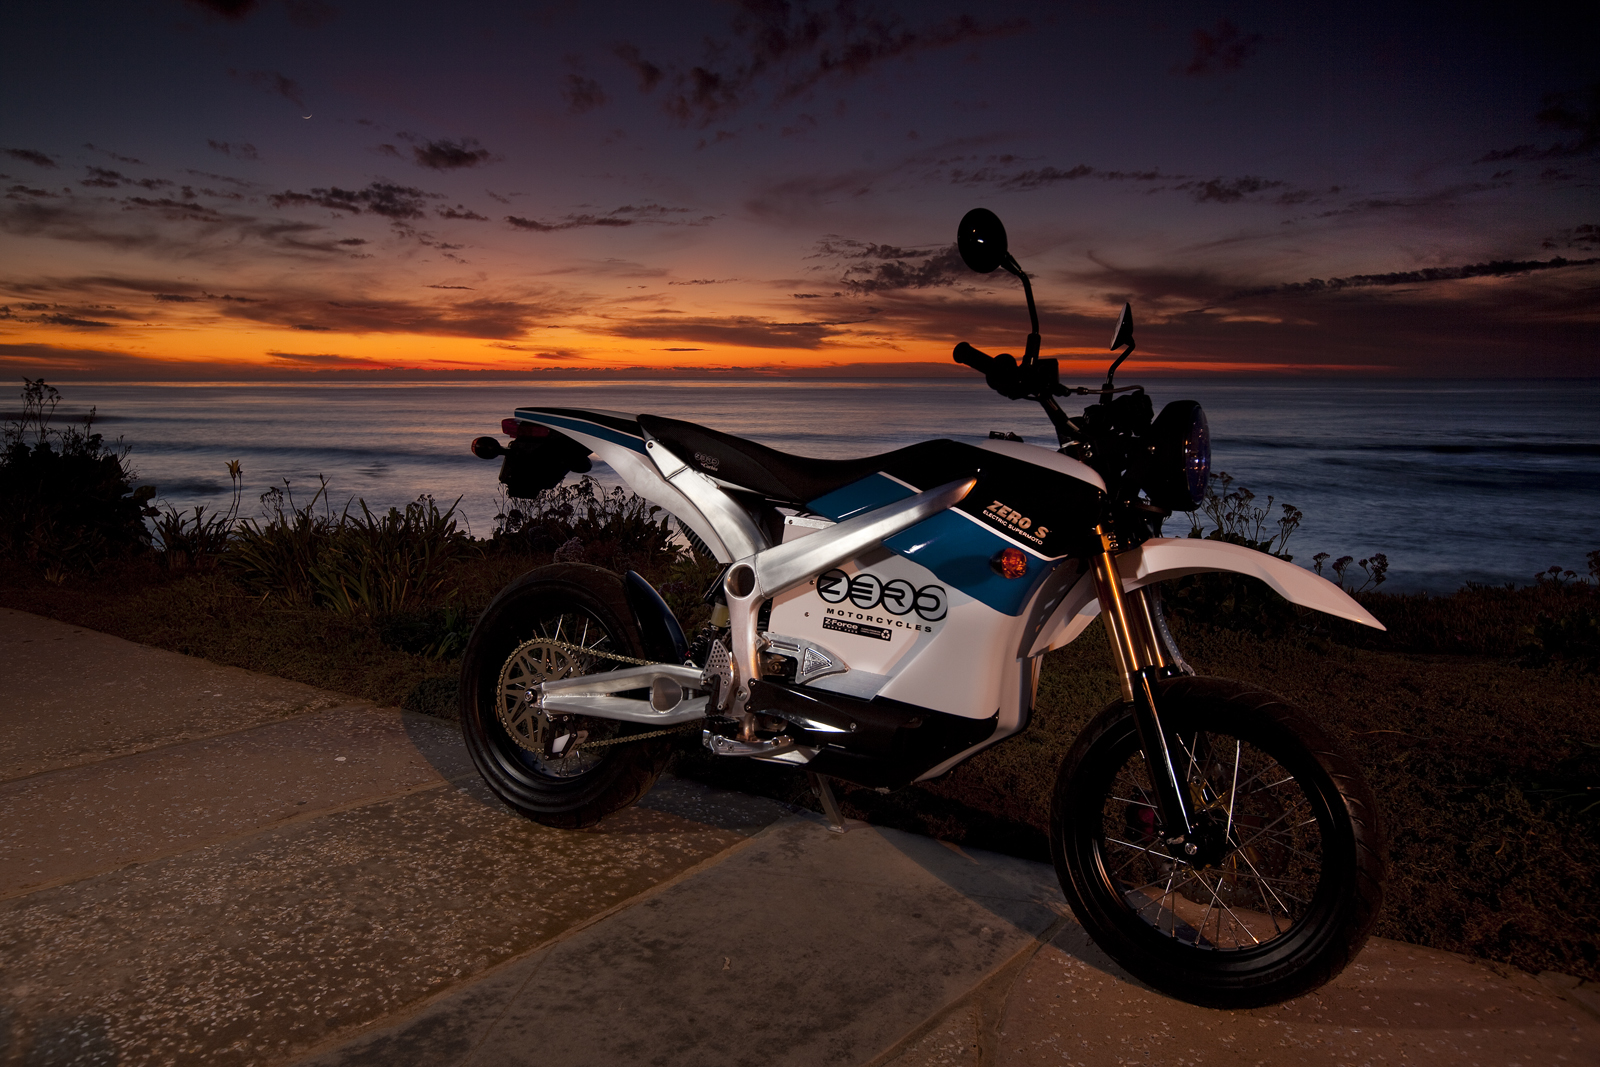 '.2010 Zero S Electric Motorcycle: San Diego - Sunset.'